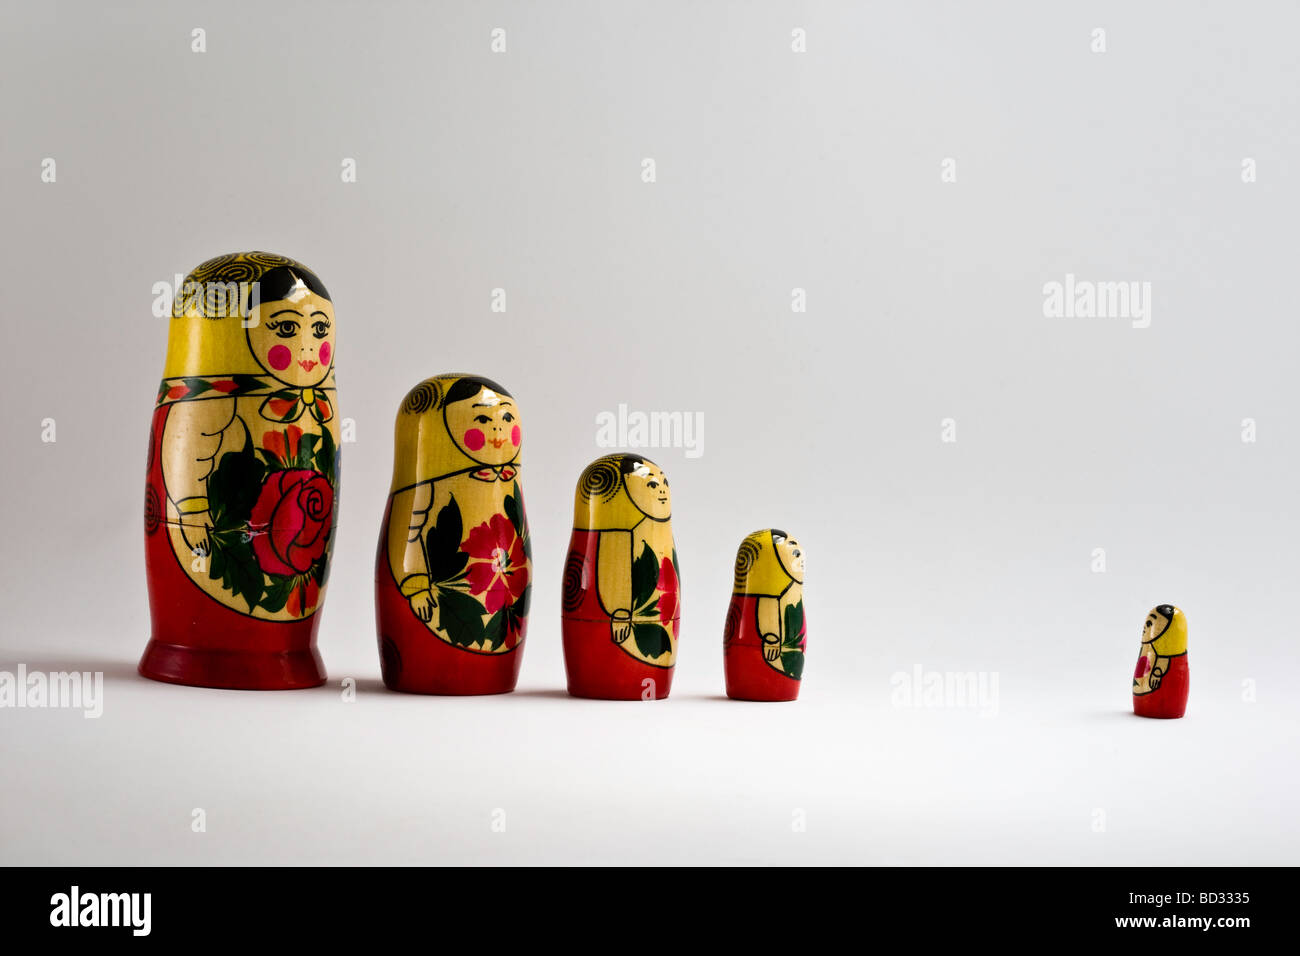 Family of Russian Dolls - Stock Image